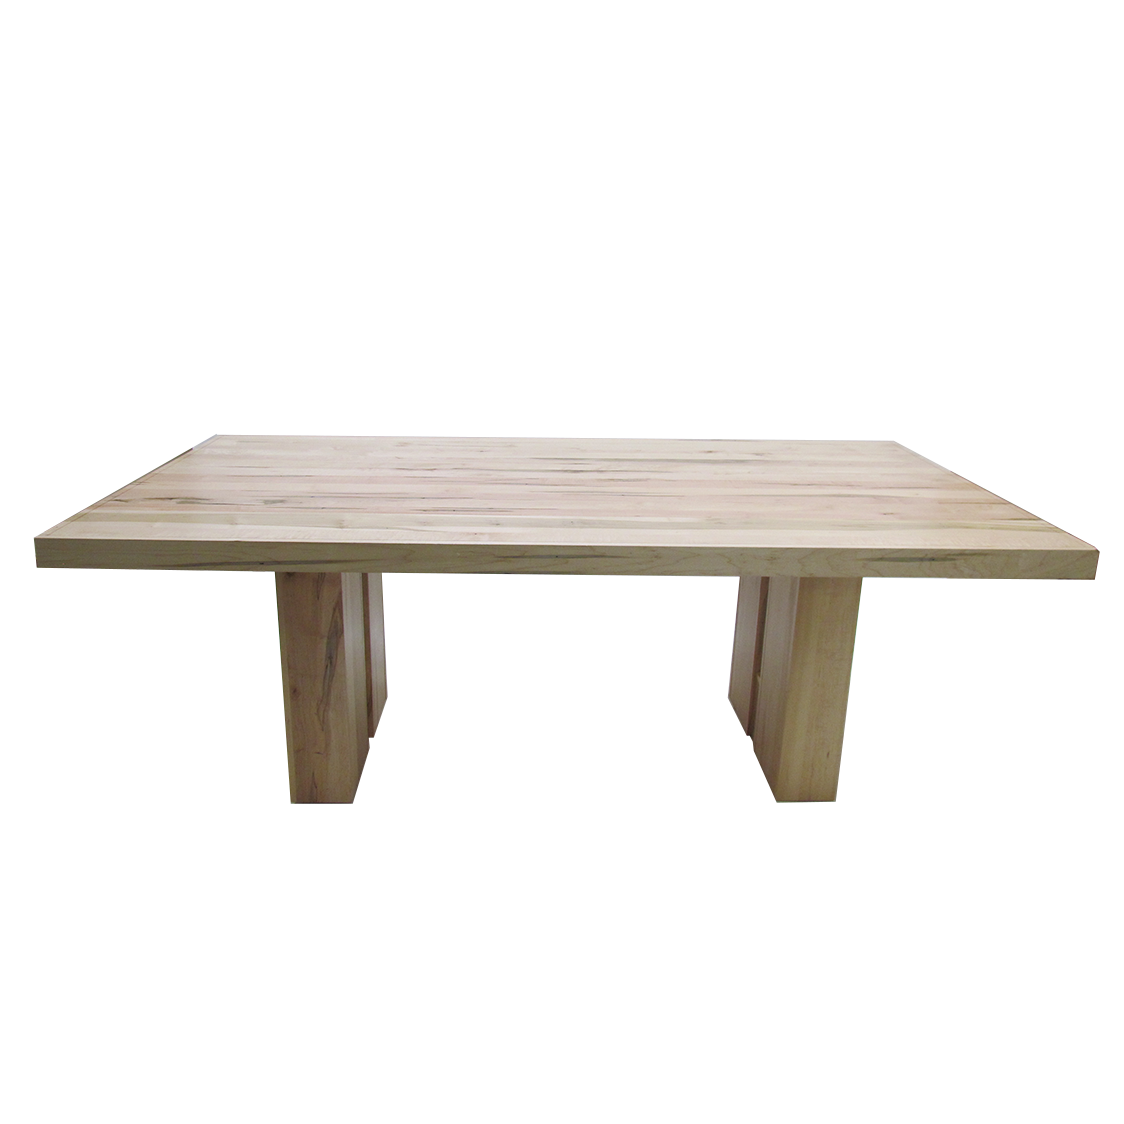 Canadian Natural Maple Dining Table Kdrshowrooms Com